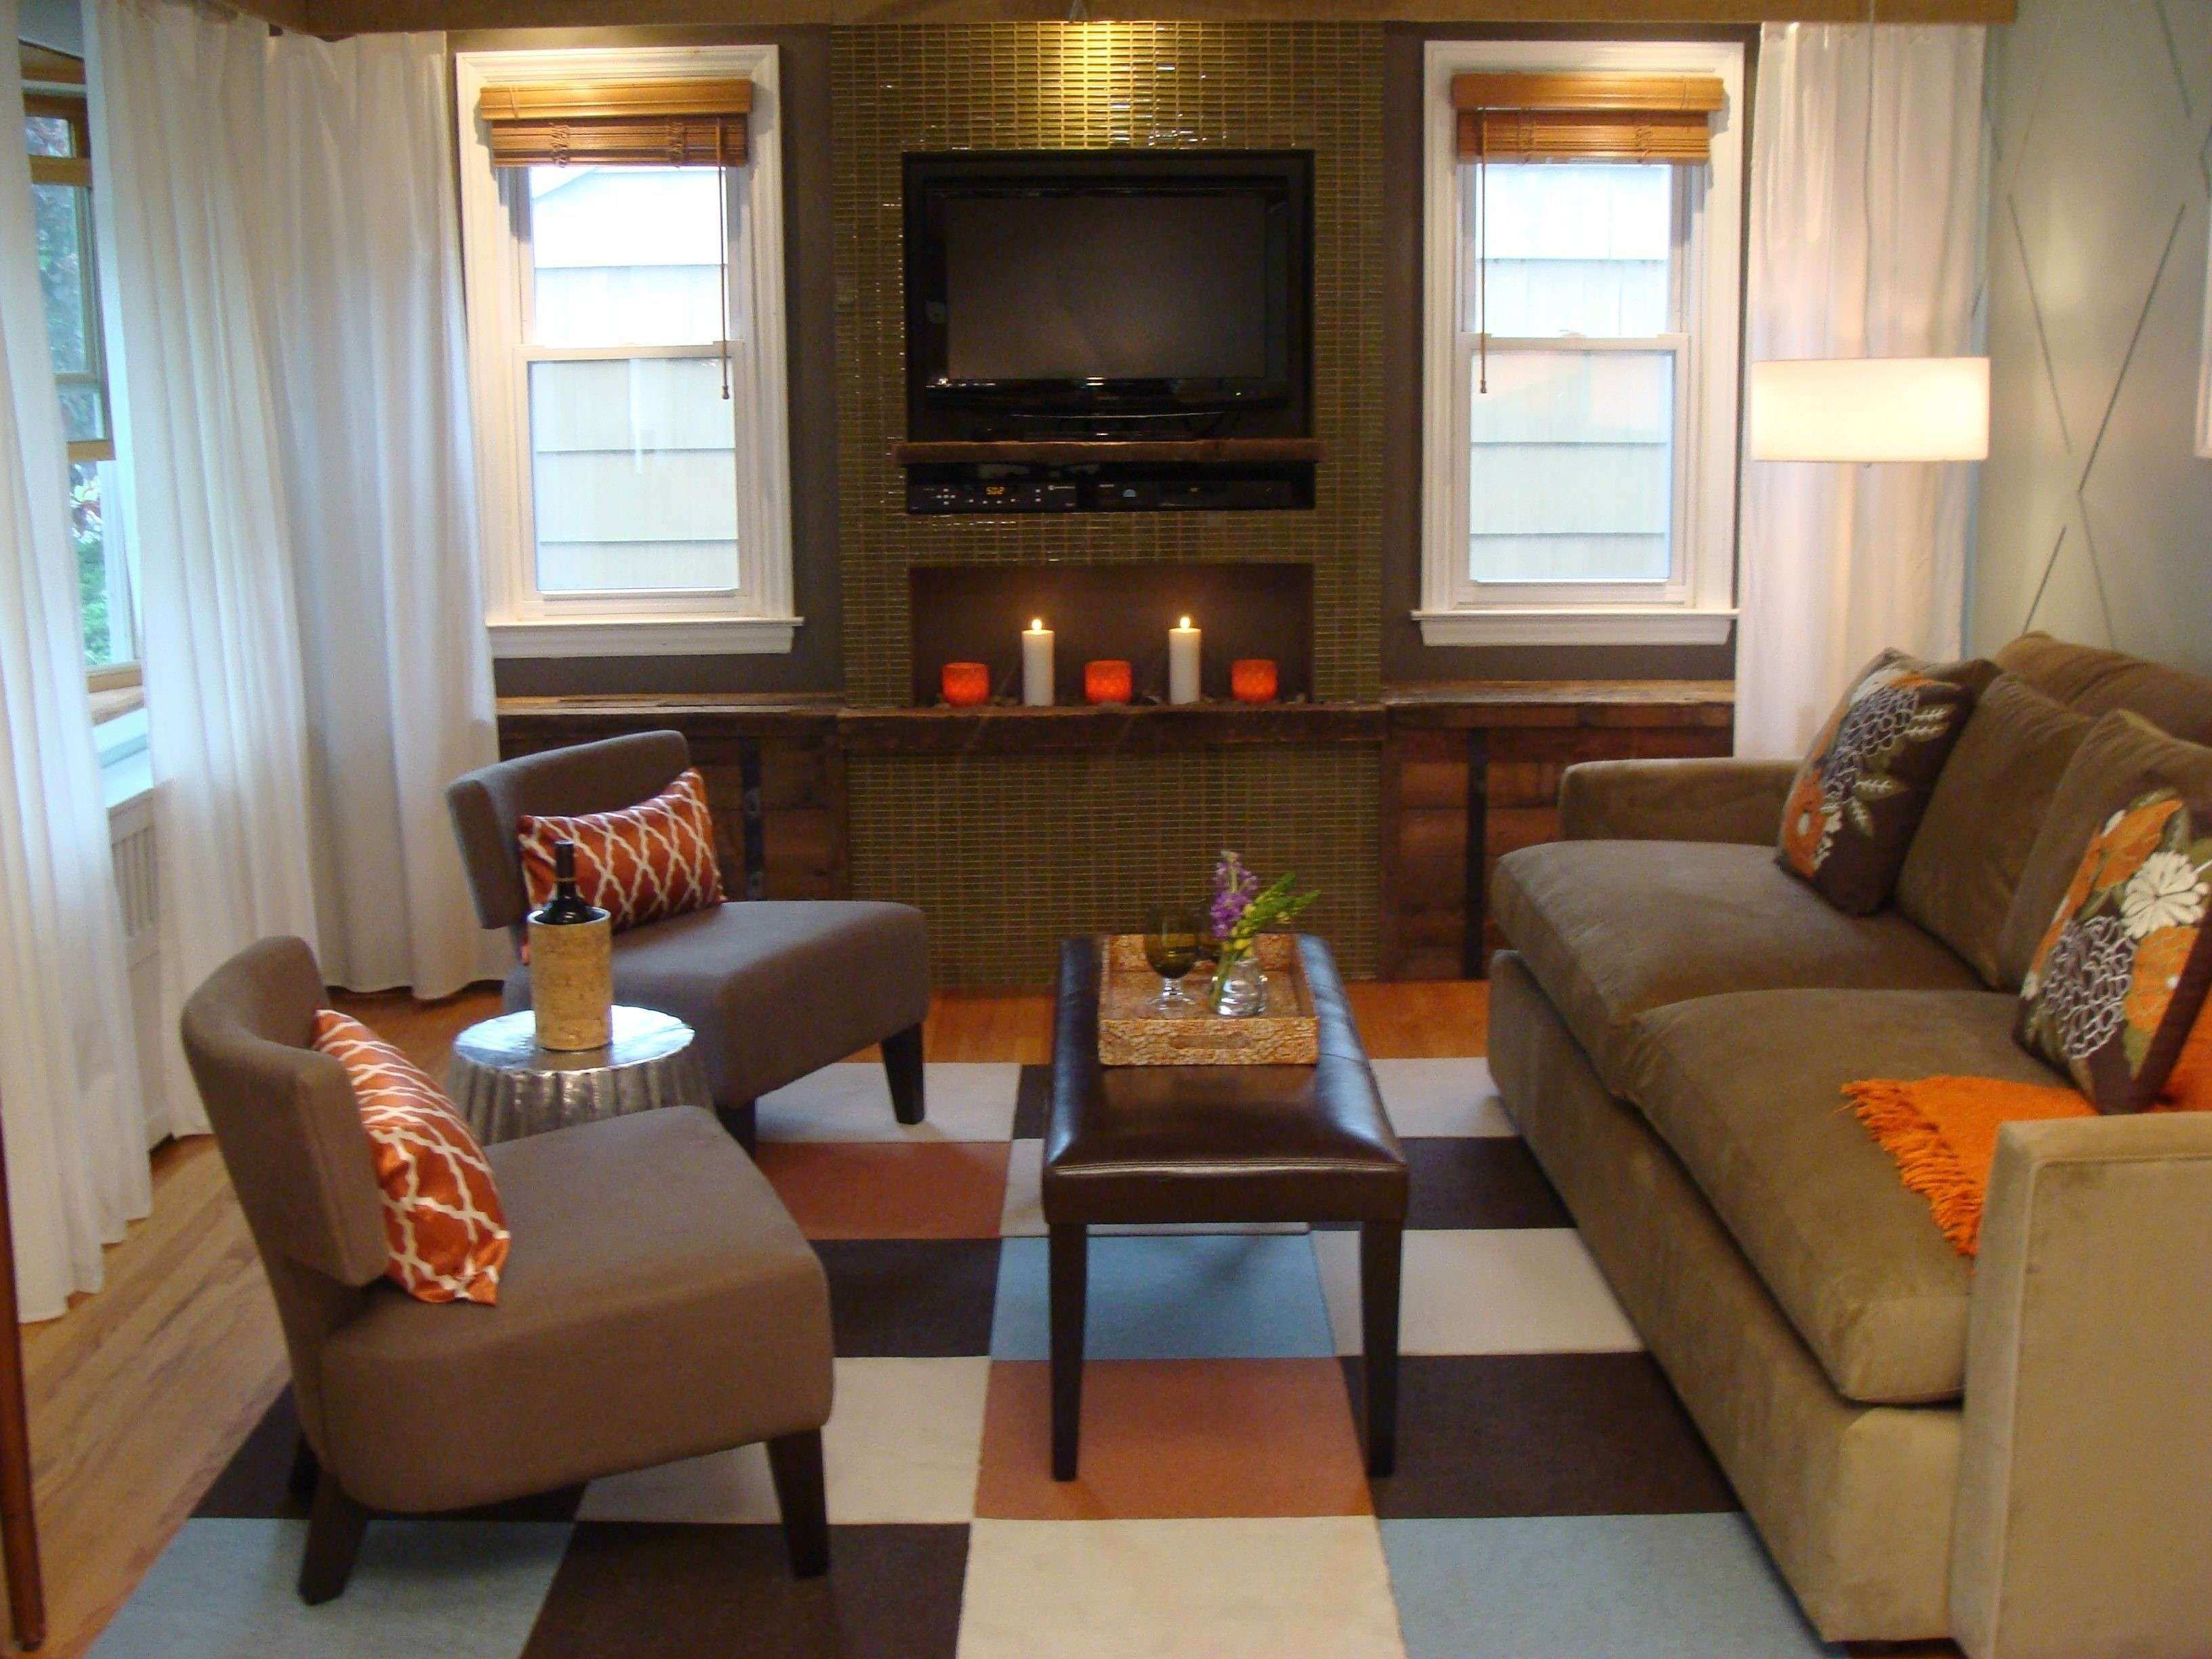 Arranging Pictures On A Wall Awesome Arranging Furniture In Small Living Room with Corner to Arrange A